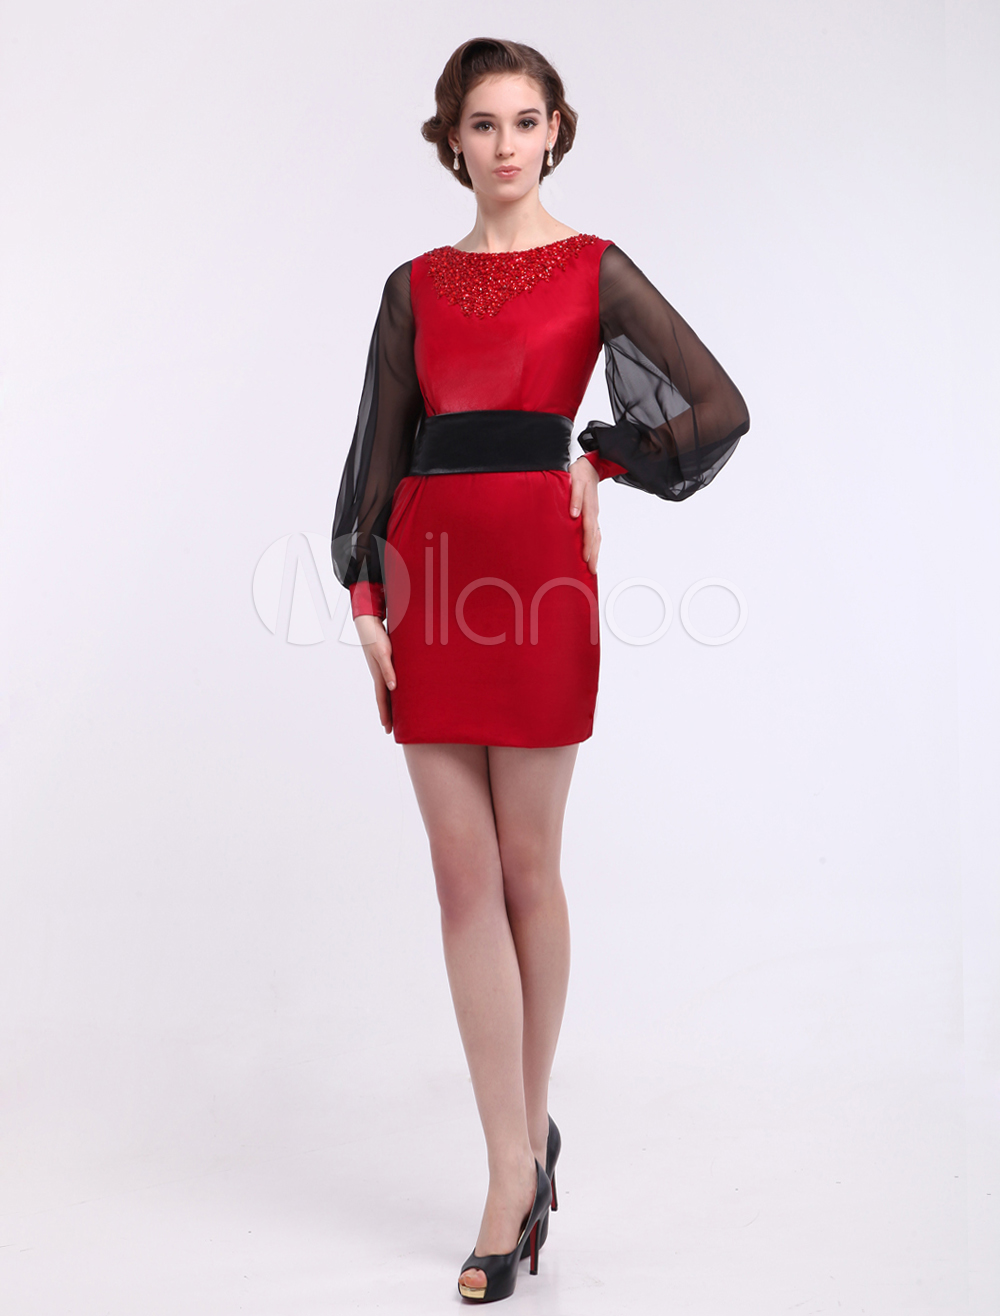 Sheath Bateau Neck Beading Long Sleeves Glamour Dress For Mother of the Bride Wedding Guest Dress Milanoo photo